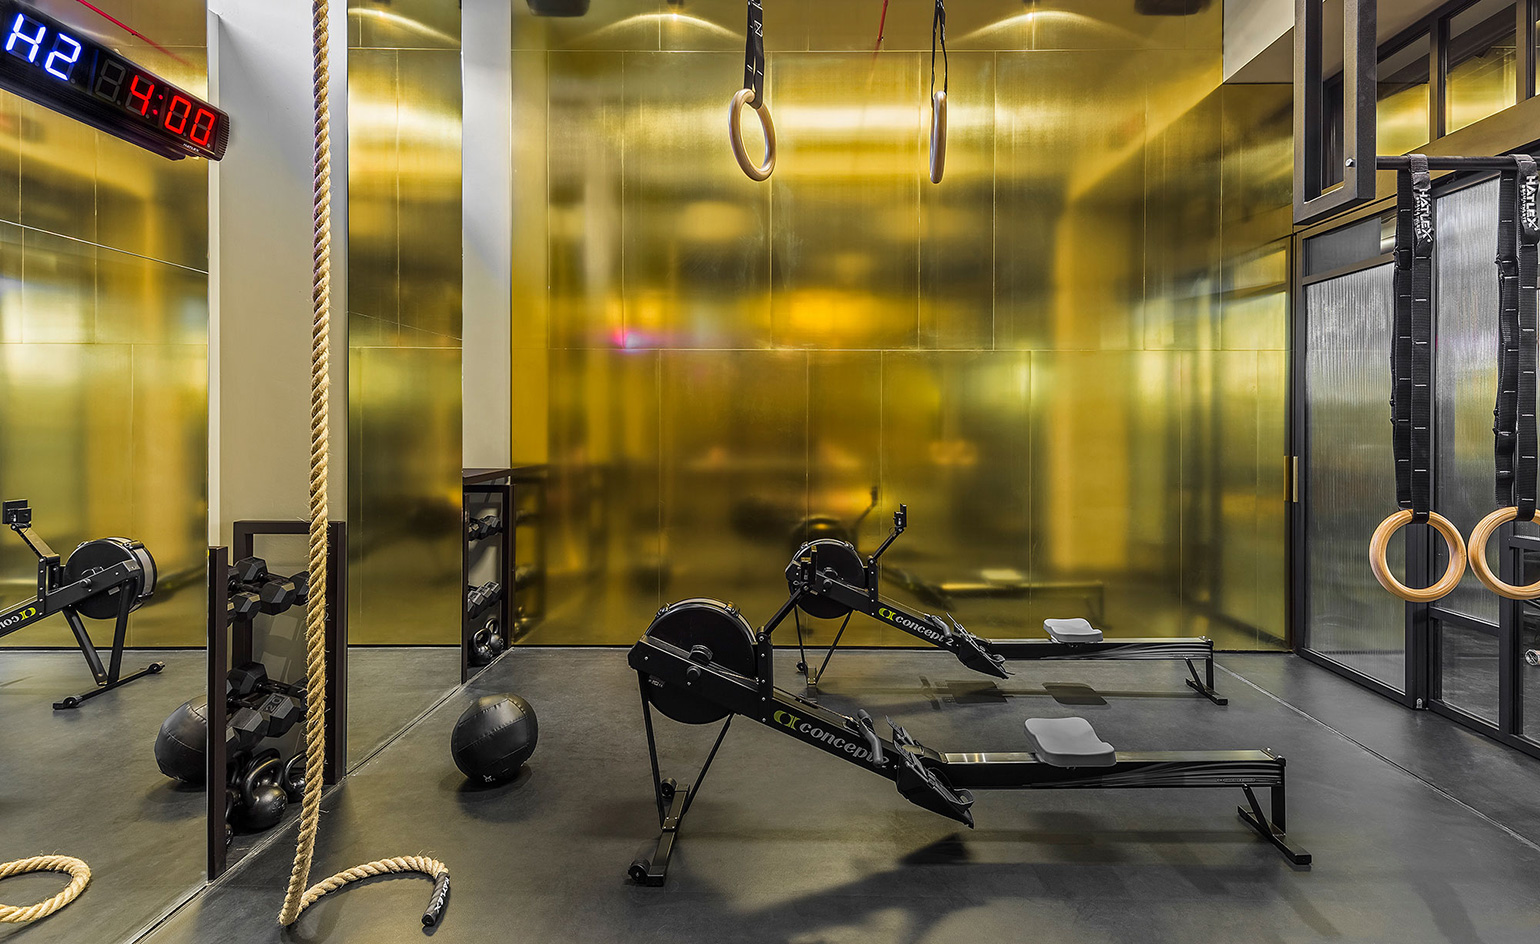 fighting fit dsquared2 s new gym is a knockout wallpaperForCeresio Palestra